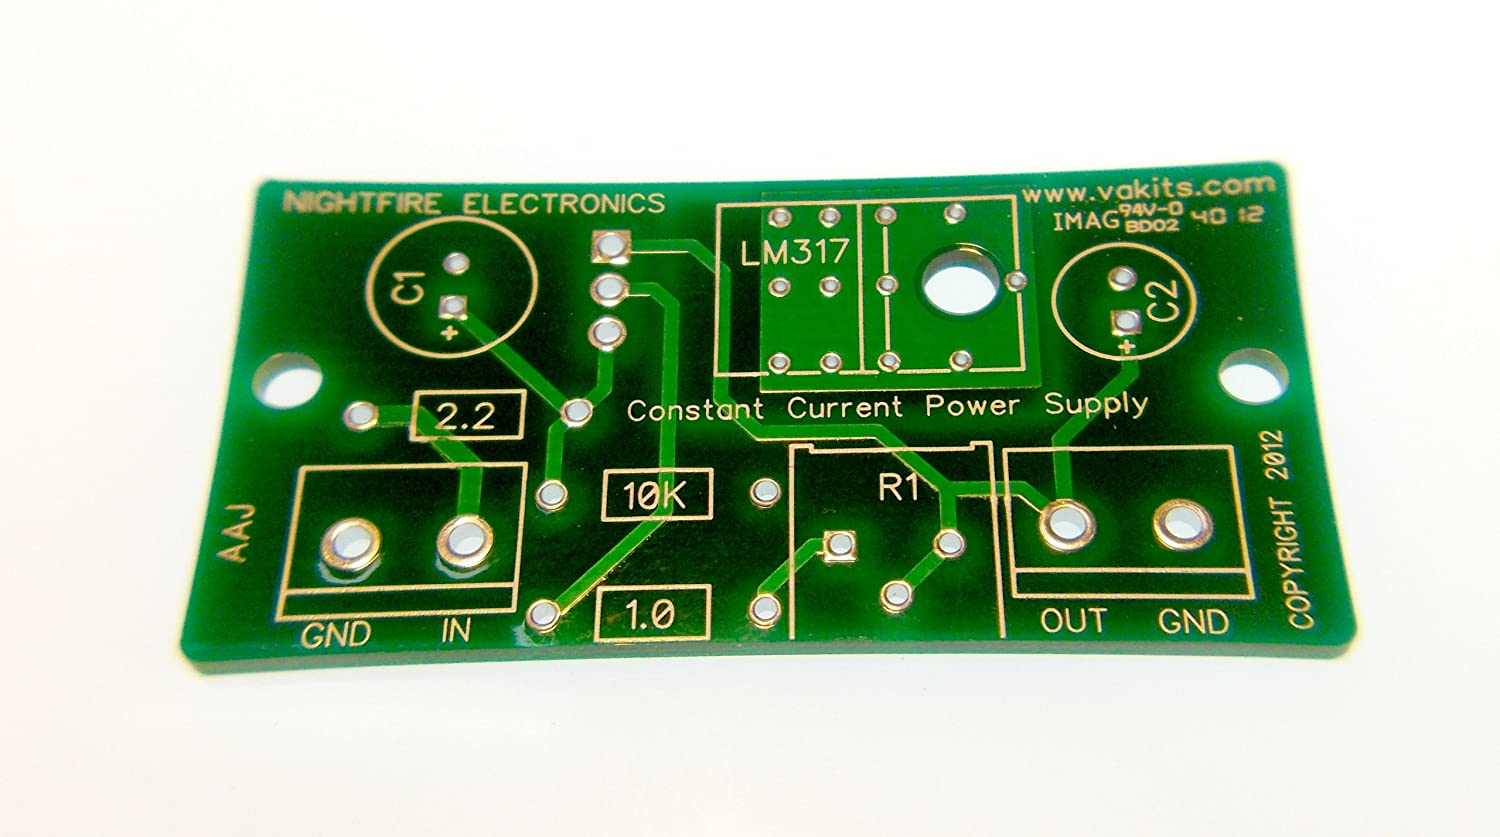 Constant Current Power Supply Kit 15ma Computers The Schematic For Max V12 Pcb Is Based On Lm317 Accessories